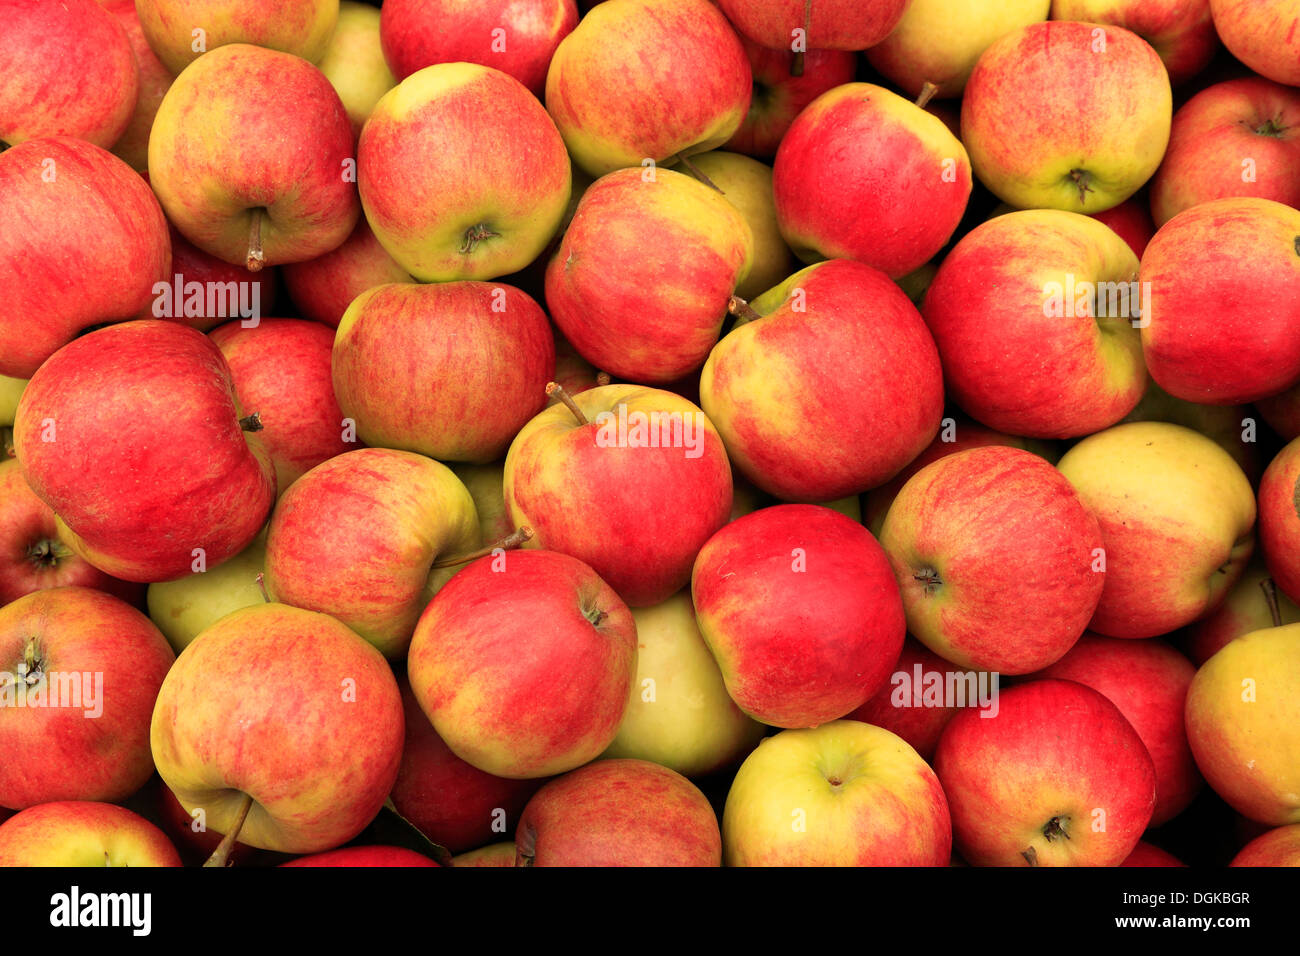 Apple 'Elstar' in farm shop display,  picked harvested apples tray - Stock Image